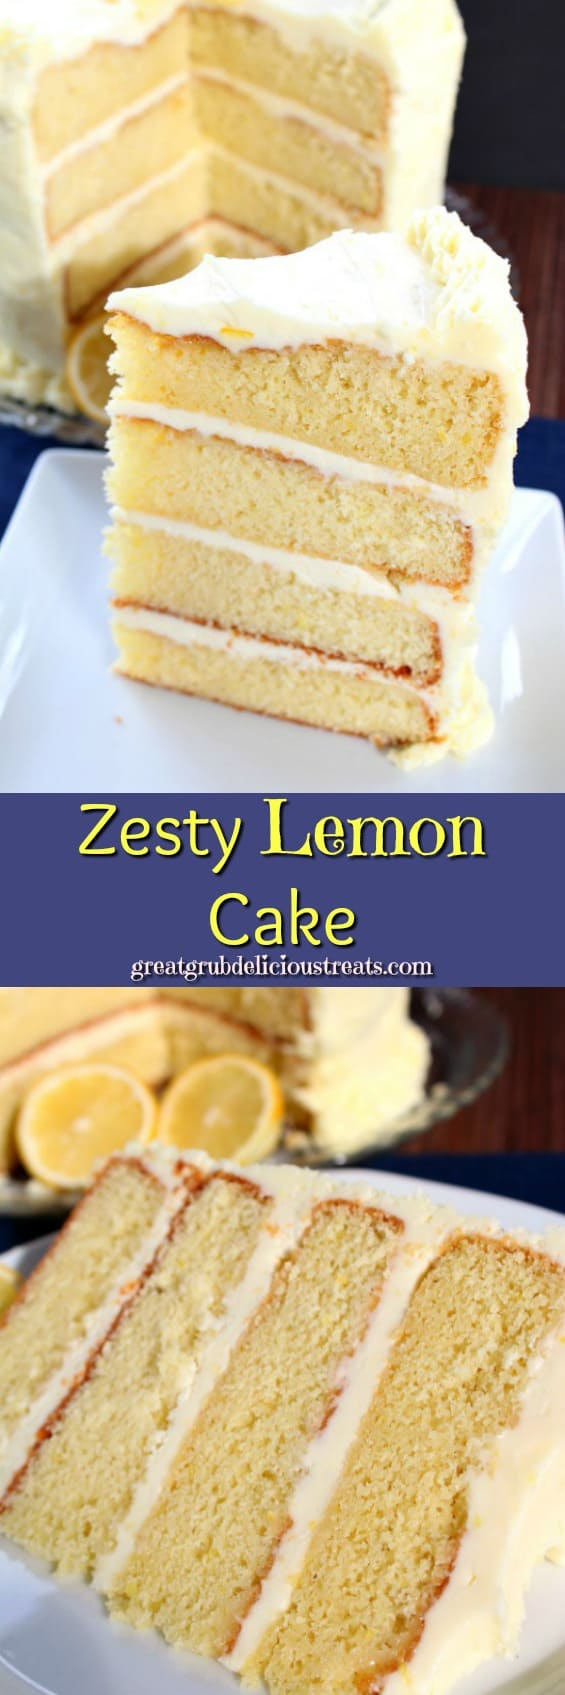 Zesty Lemon Cake -